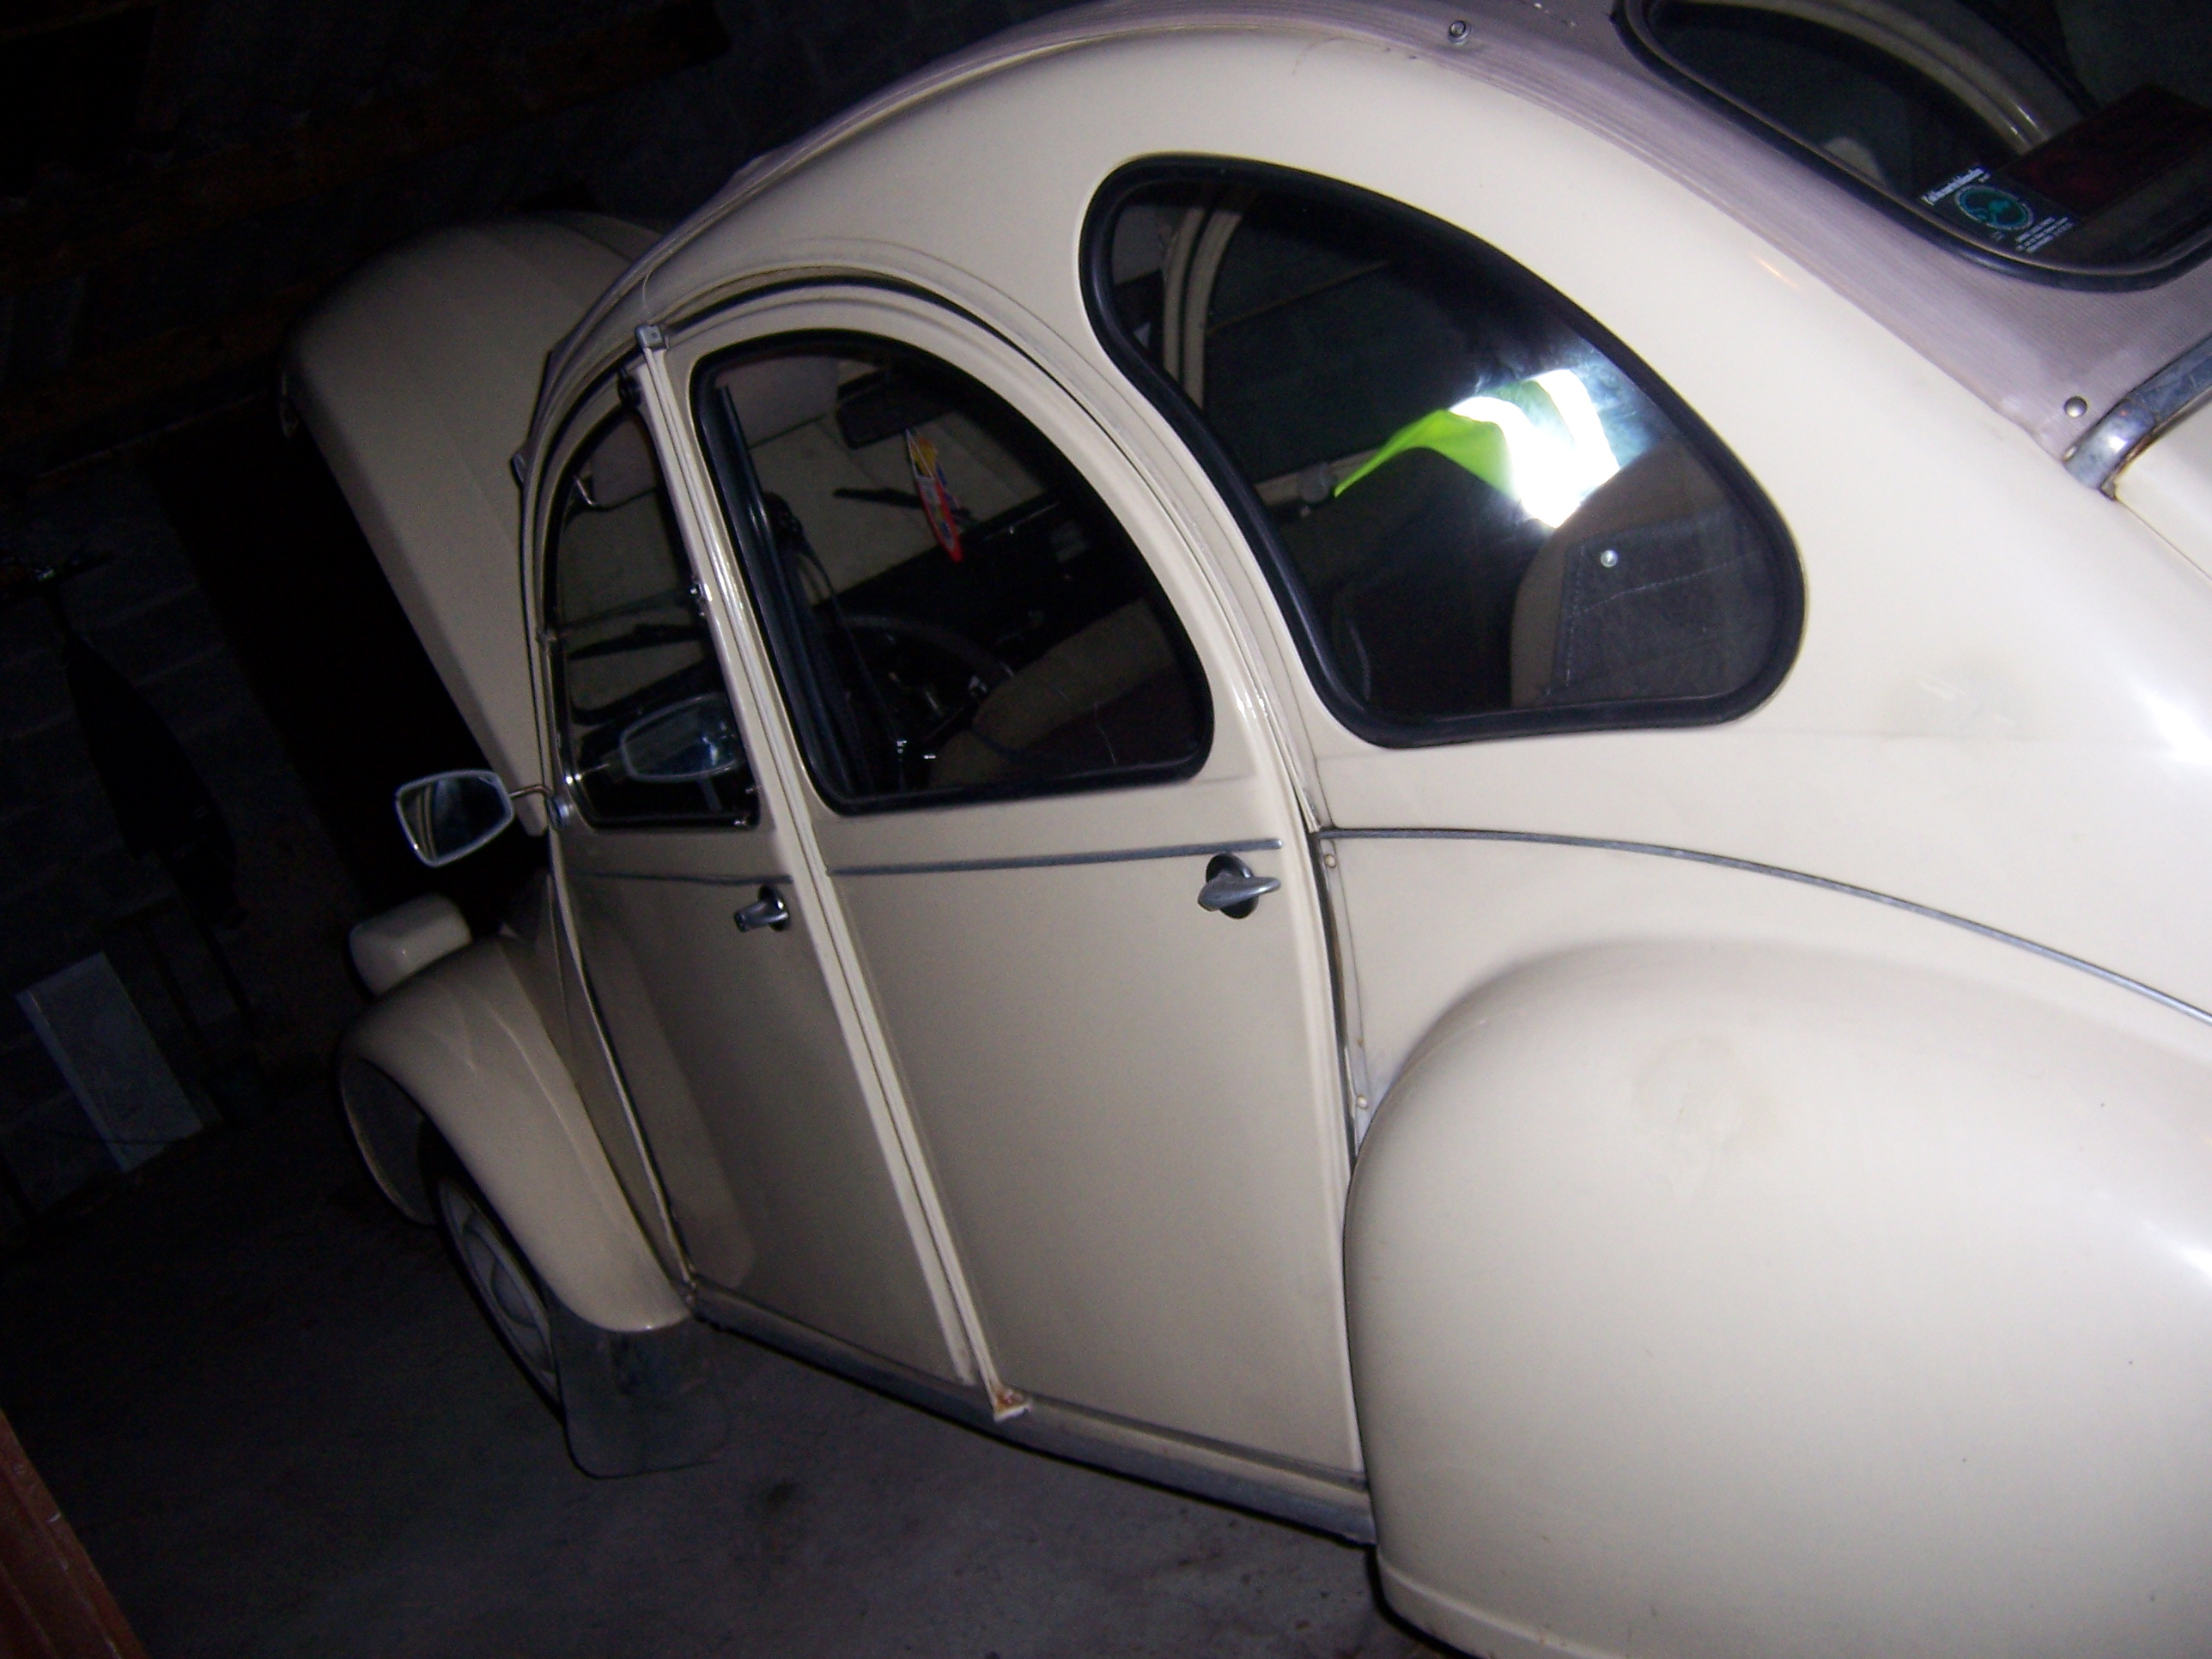 2cv vendre photos 2 cv vendre sur raismes nord de la france. Black Bedroom Furniture Sets. Home Design Ideas